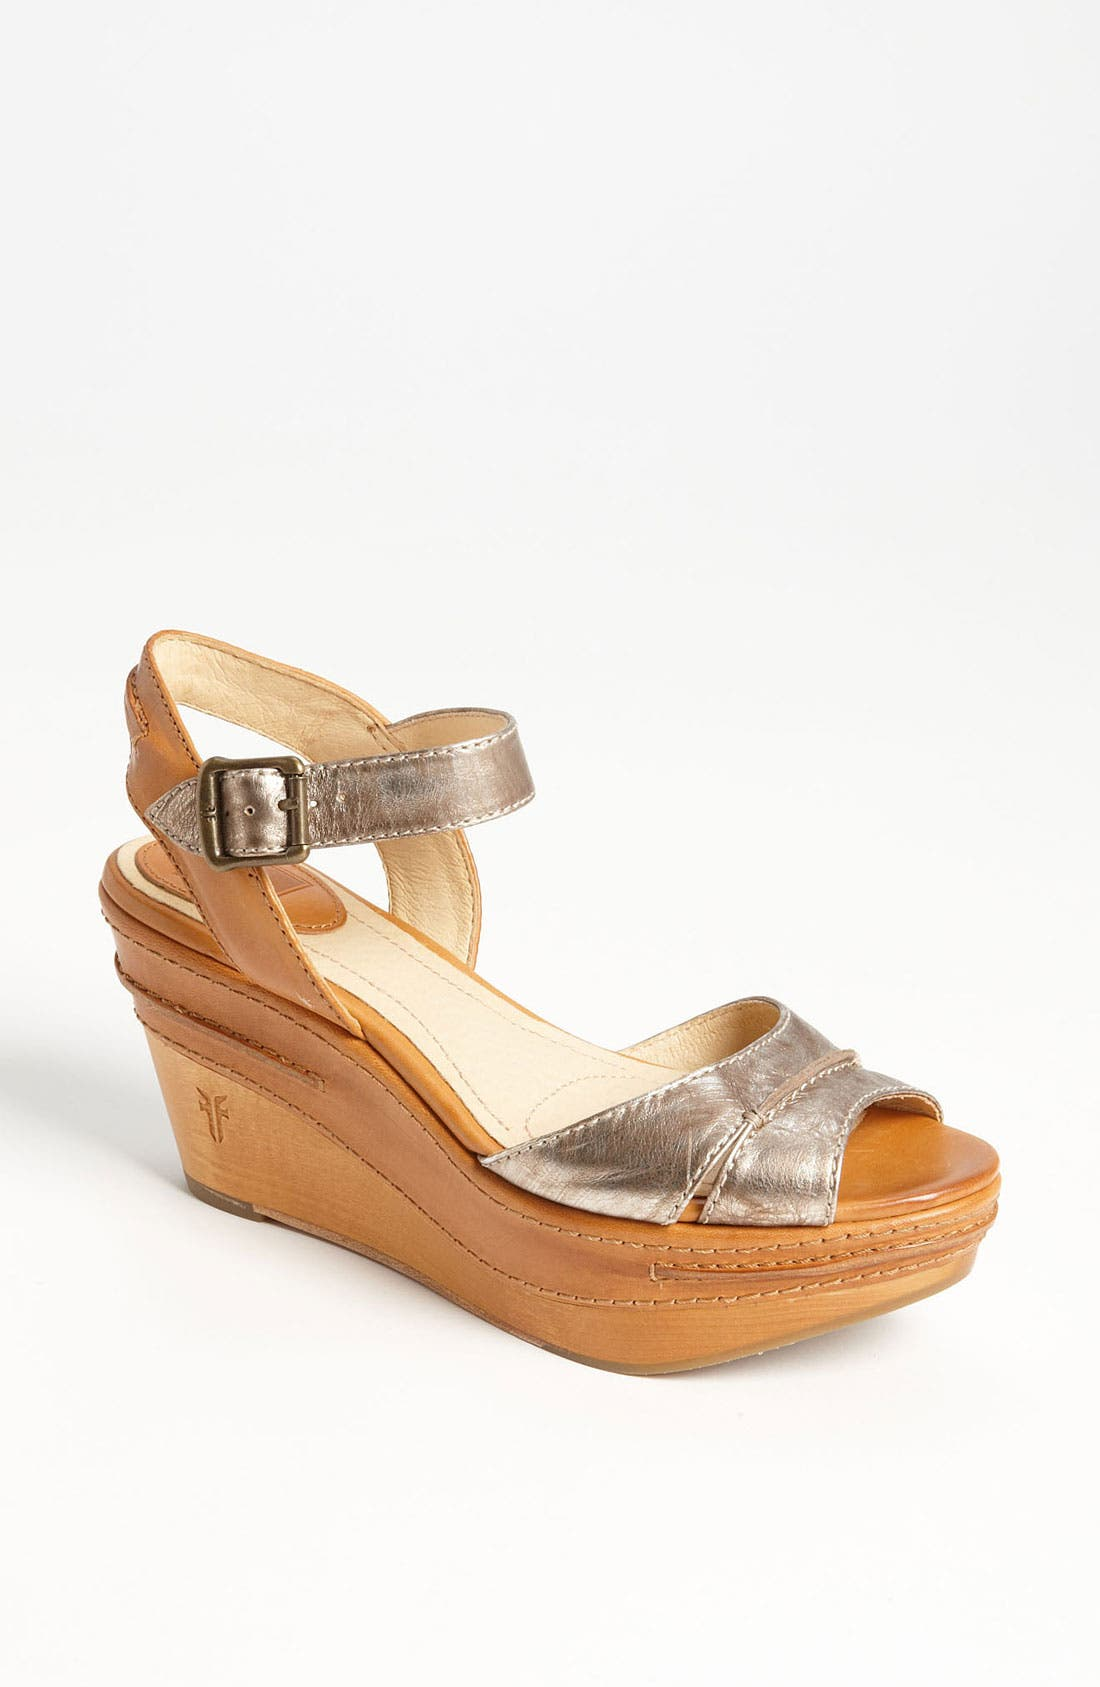 Alternate Image 1 Selected - Frye 'Carlie Seam' Sandal